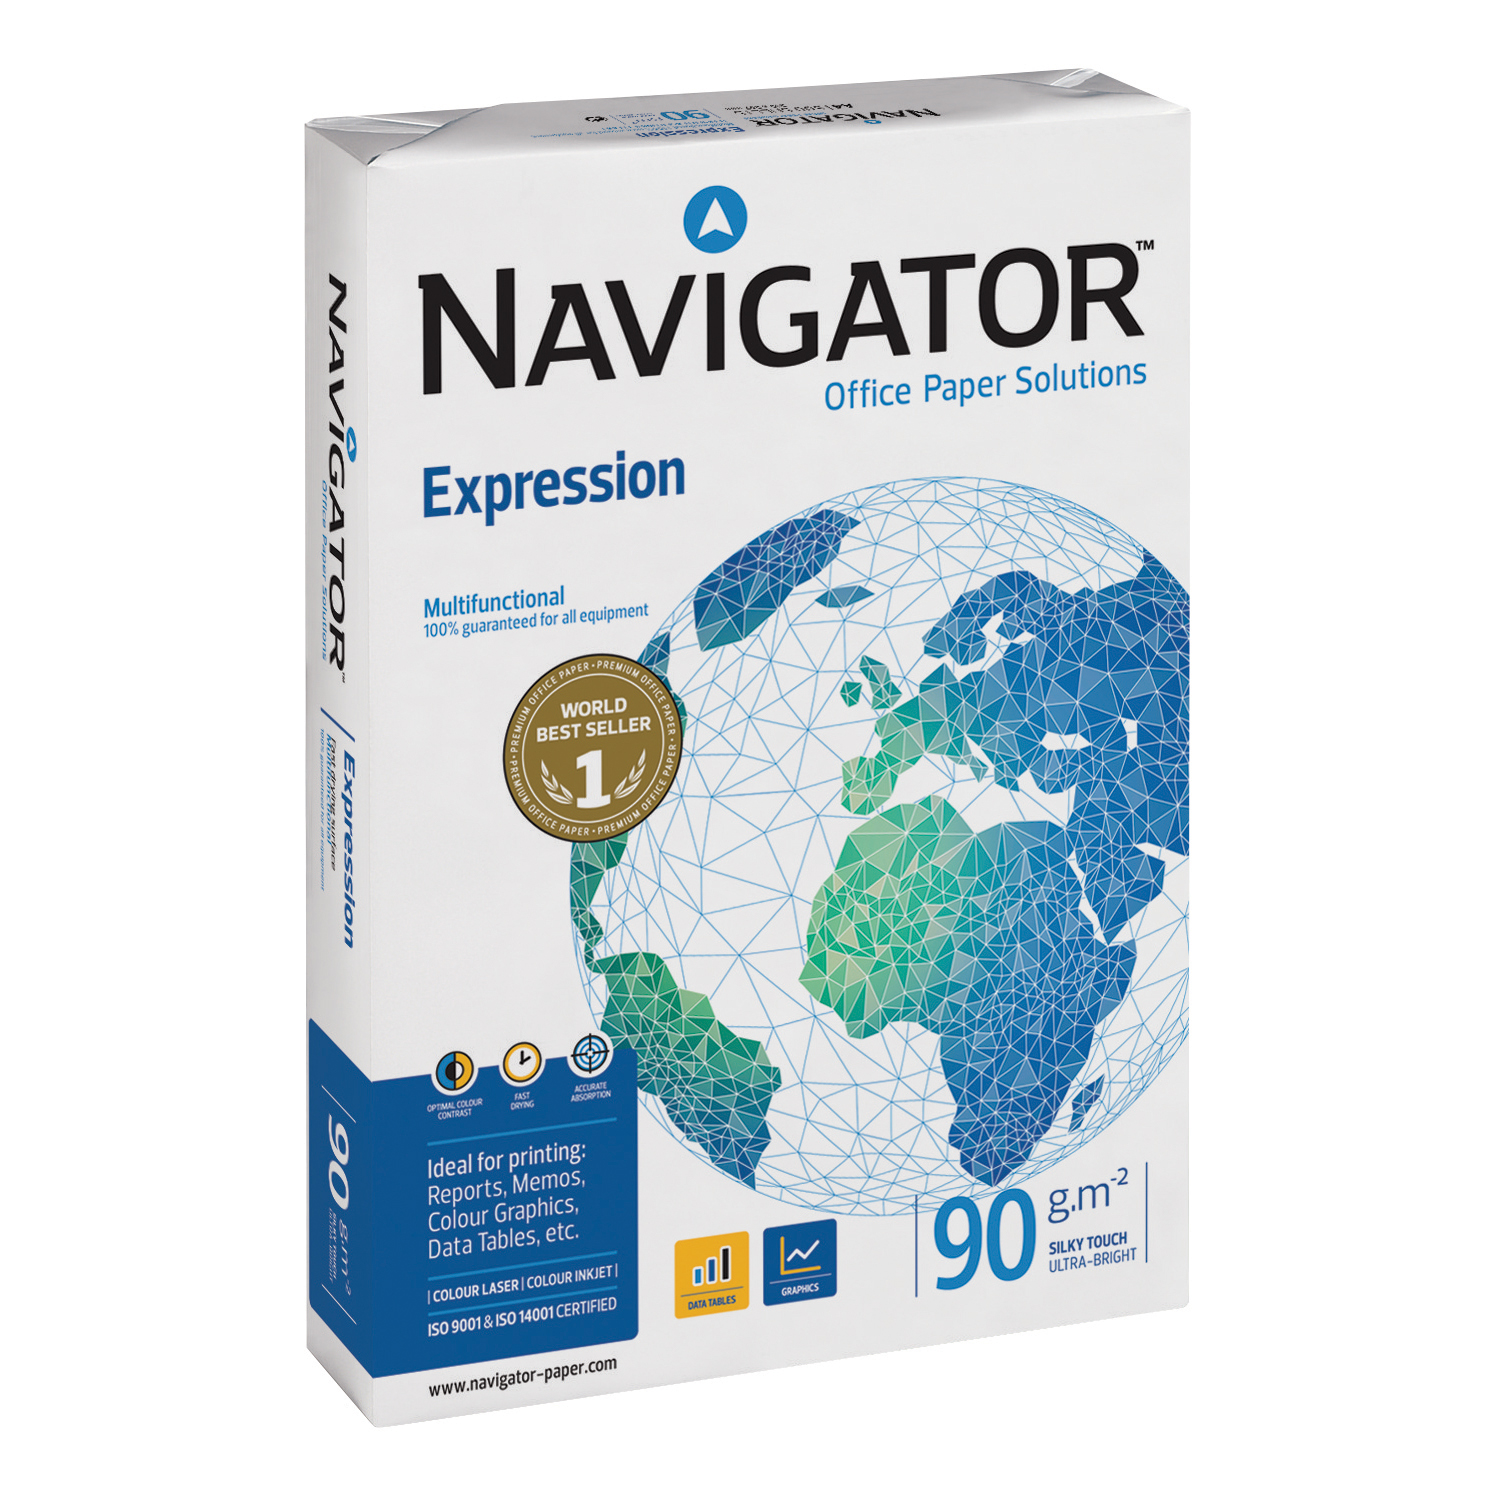 Navigator Expression Paper Ream-Wrapped 90gsm A3 White Ref NAV90A3 500 Sheets